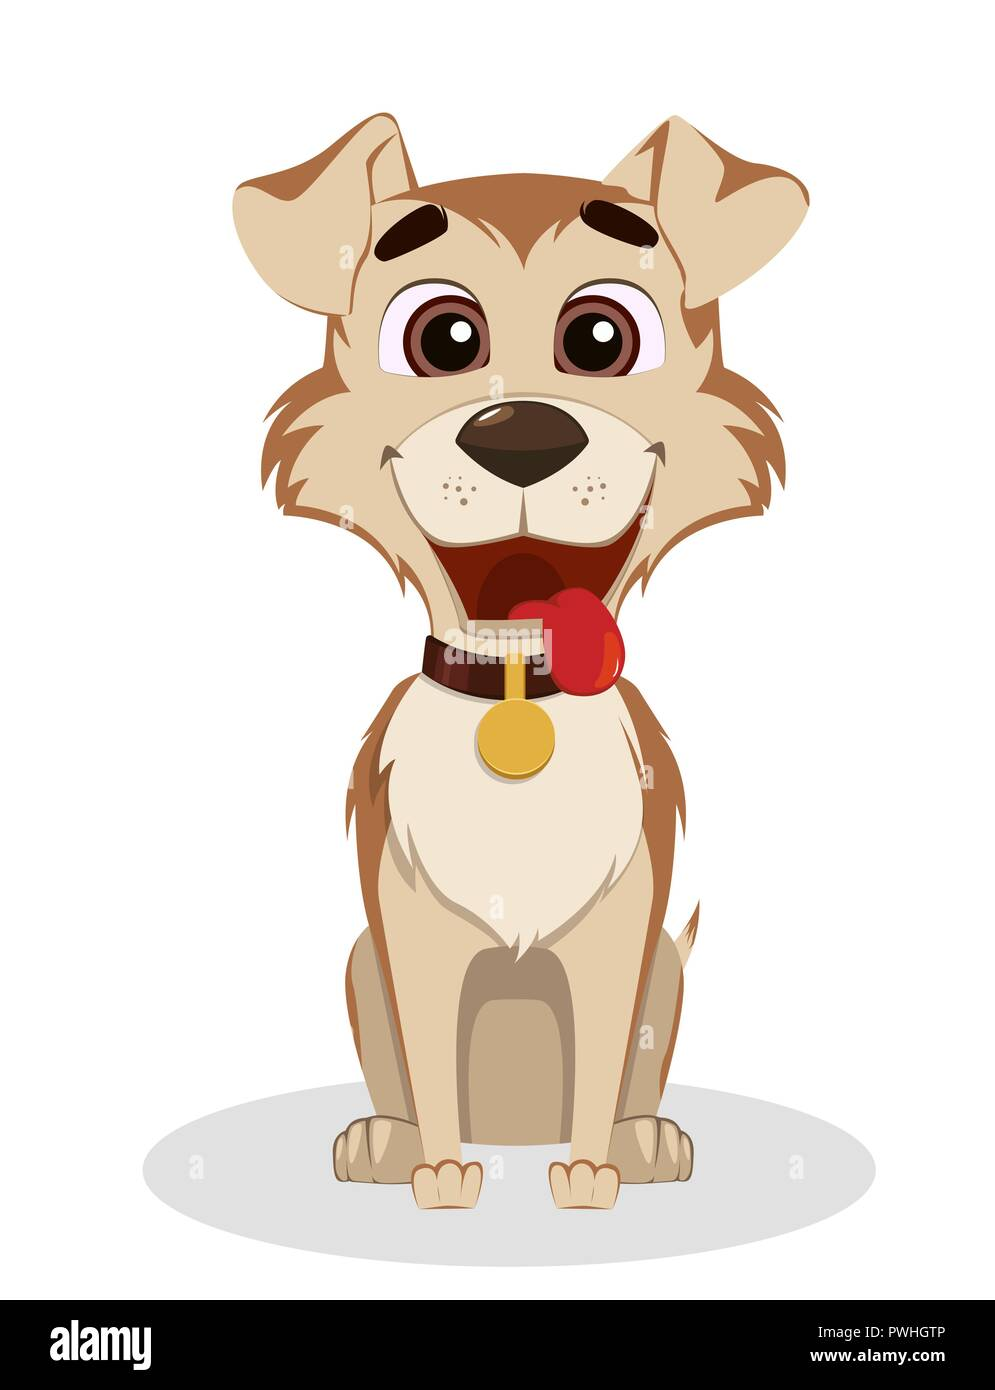 Cute Funny Dog Puppy Cartoon Character Vector Illustration Isolated On White Background Stock Vector Image Art Alamy